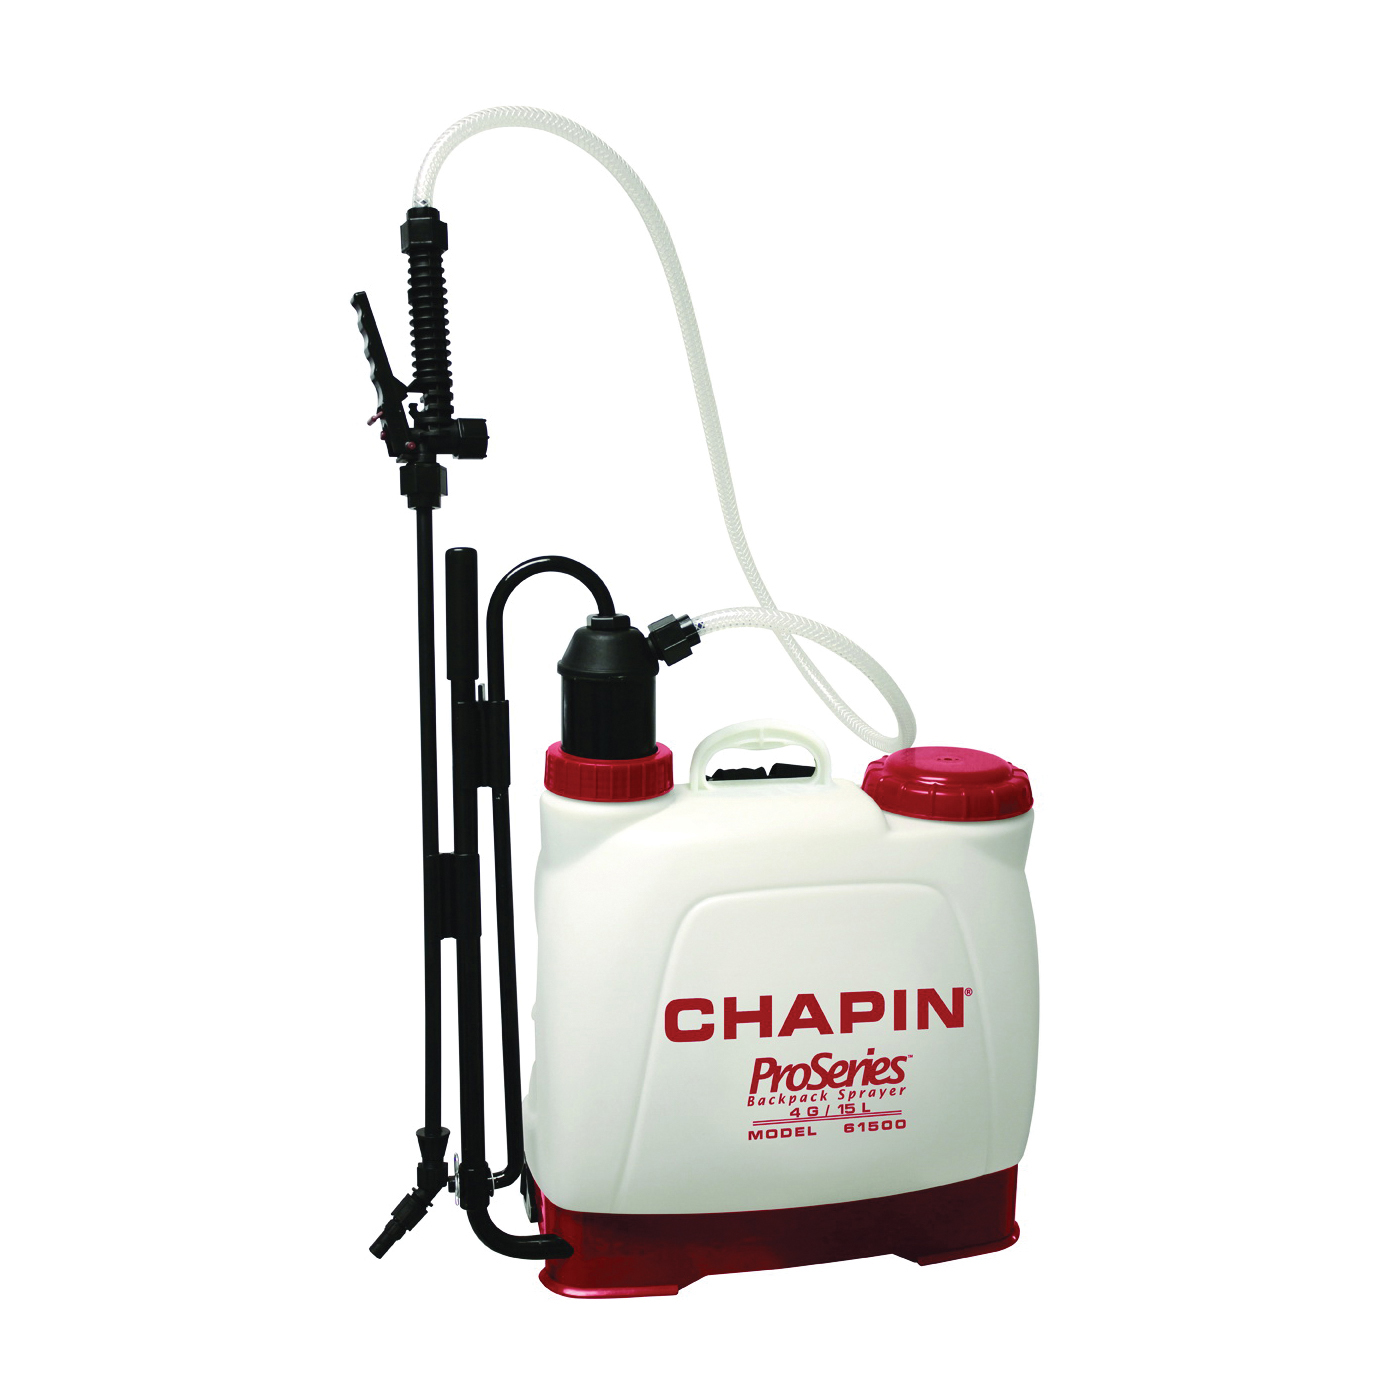 Picture of CHAPIN Euro Style 61500 Backpack Sprayer, 4 gal Tank, Poly Tank, 25 ft Horizontal, 23 ft Vertical Spray Range